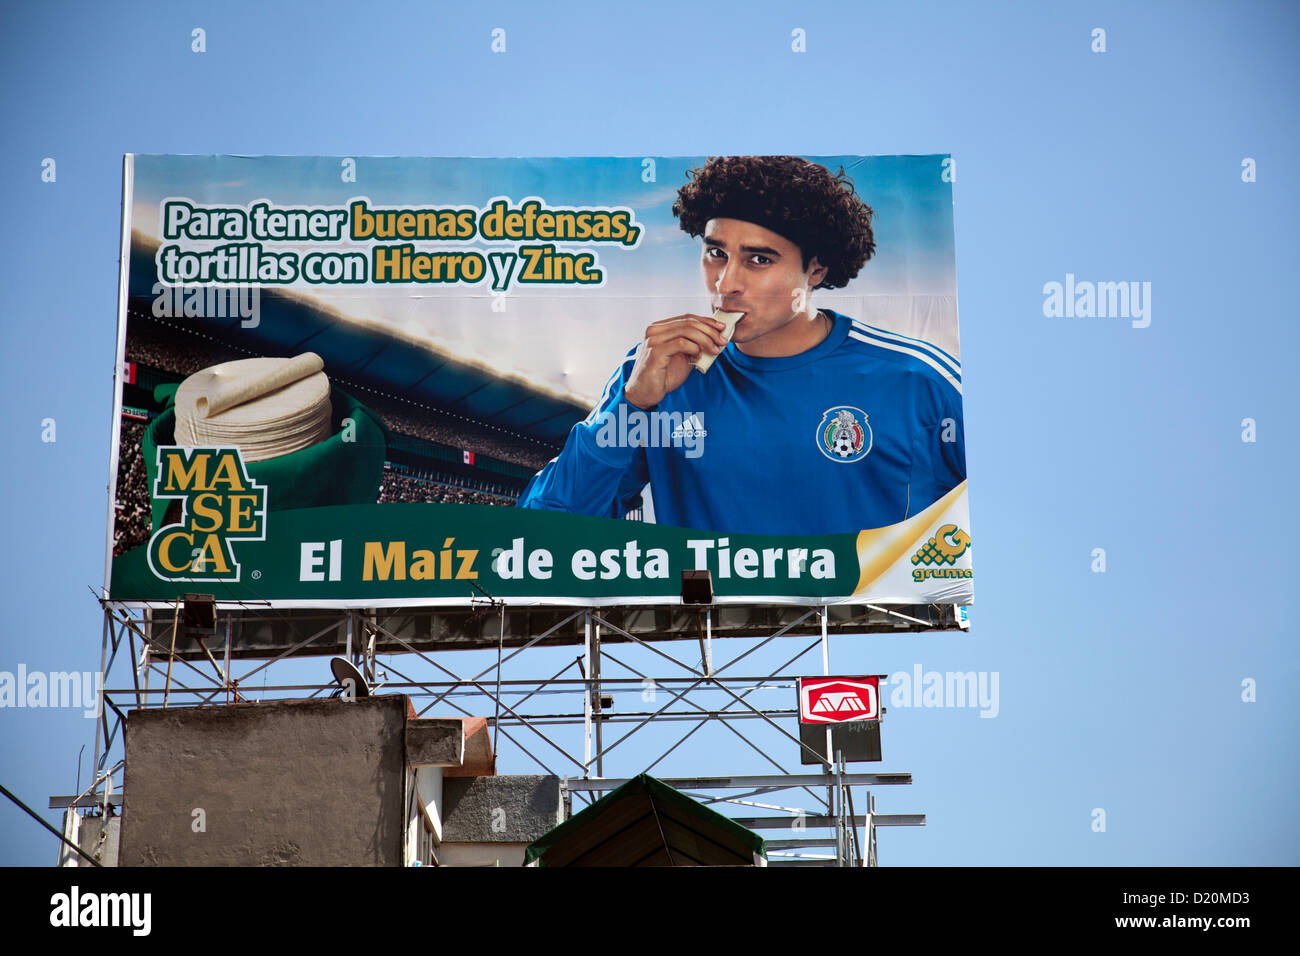 Maseca Billboard with Footballer in Mexico City DF - Stock Image